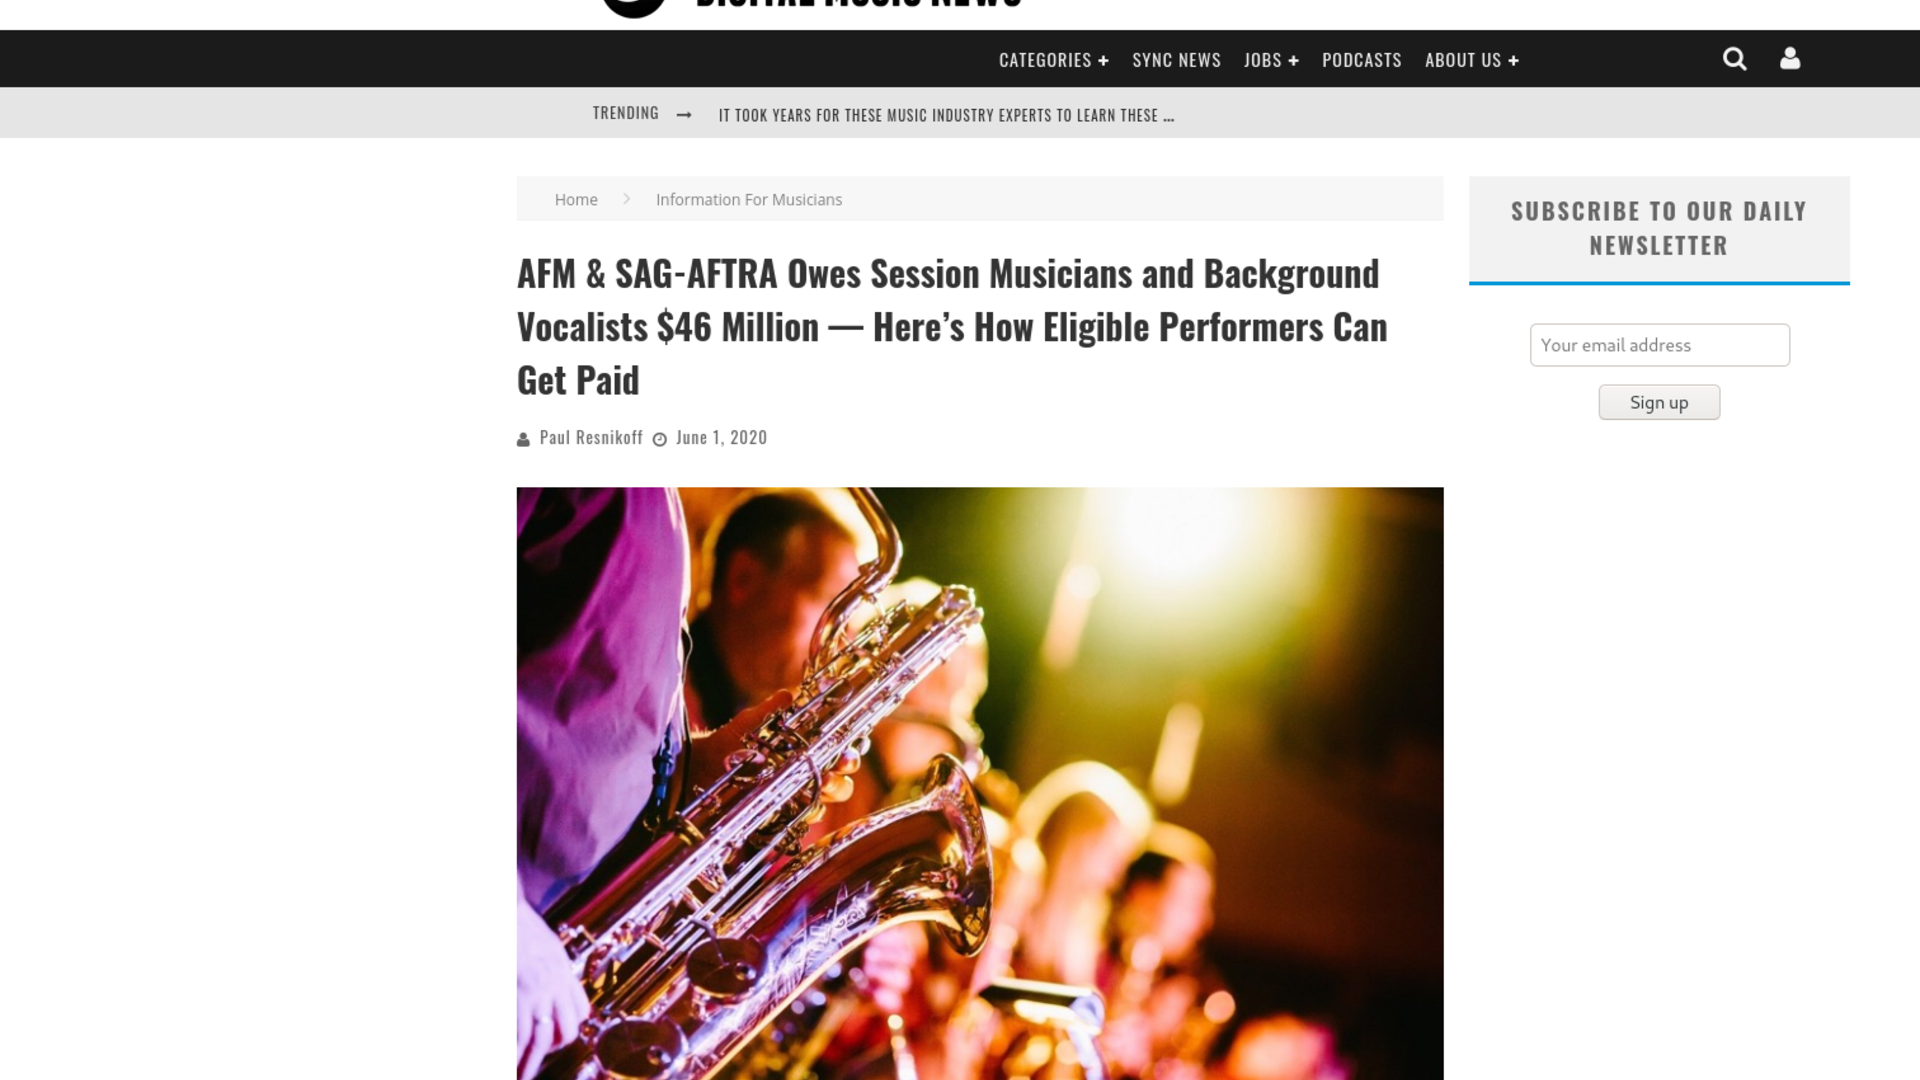 Fairness Rocks News AFM & SAG-AFTRA Owes Session Musicians and Background Vocalists $46 Million — Here's How Eligible Performers Can Get Paid